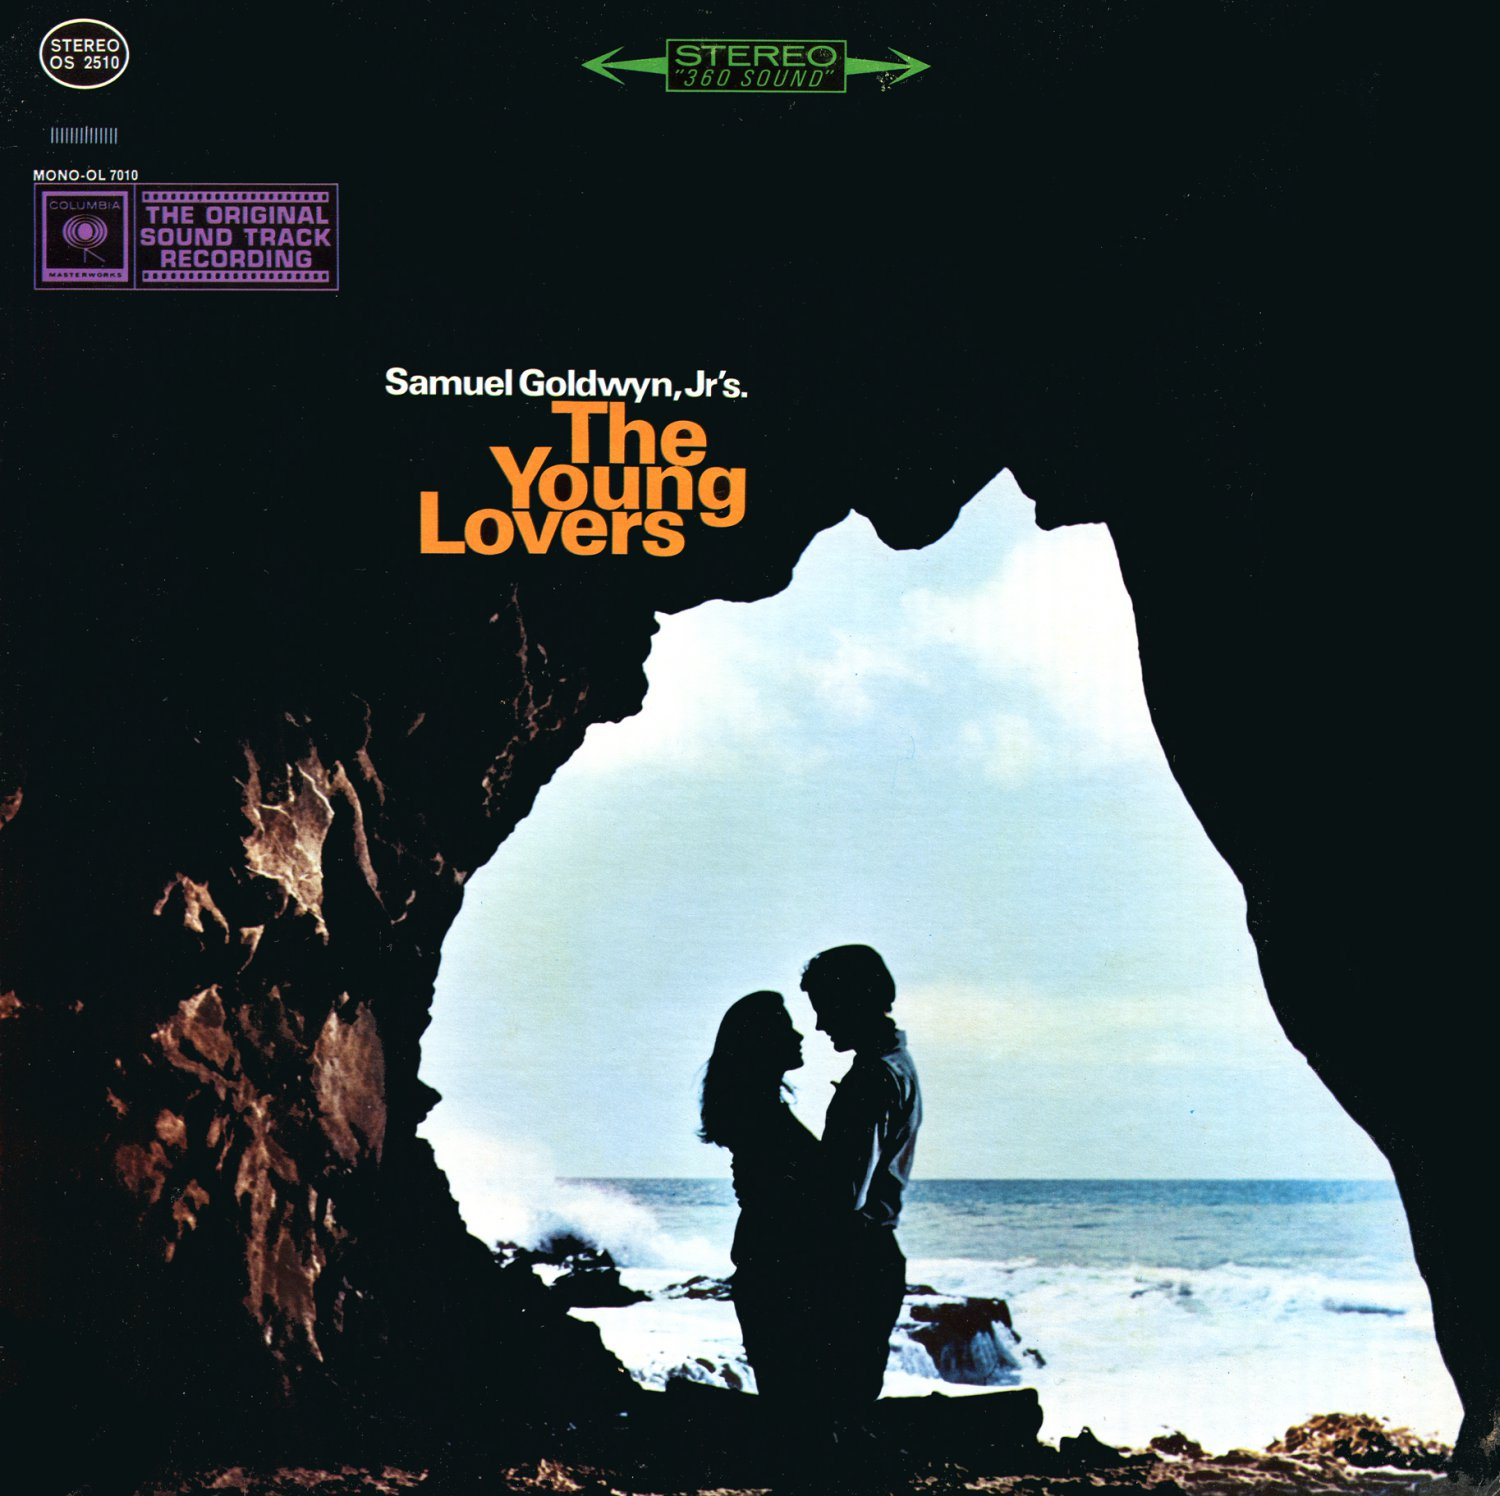 The Young Lovers - Original Soundtrack, Sol Kaplan OST LP/CD